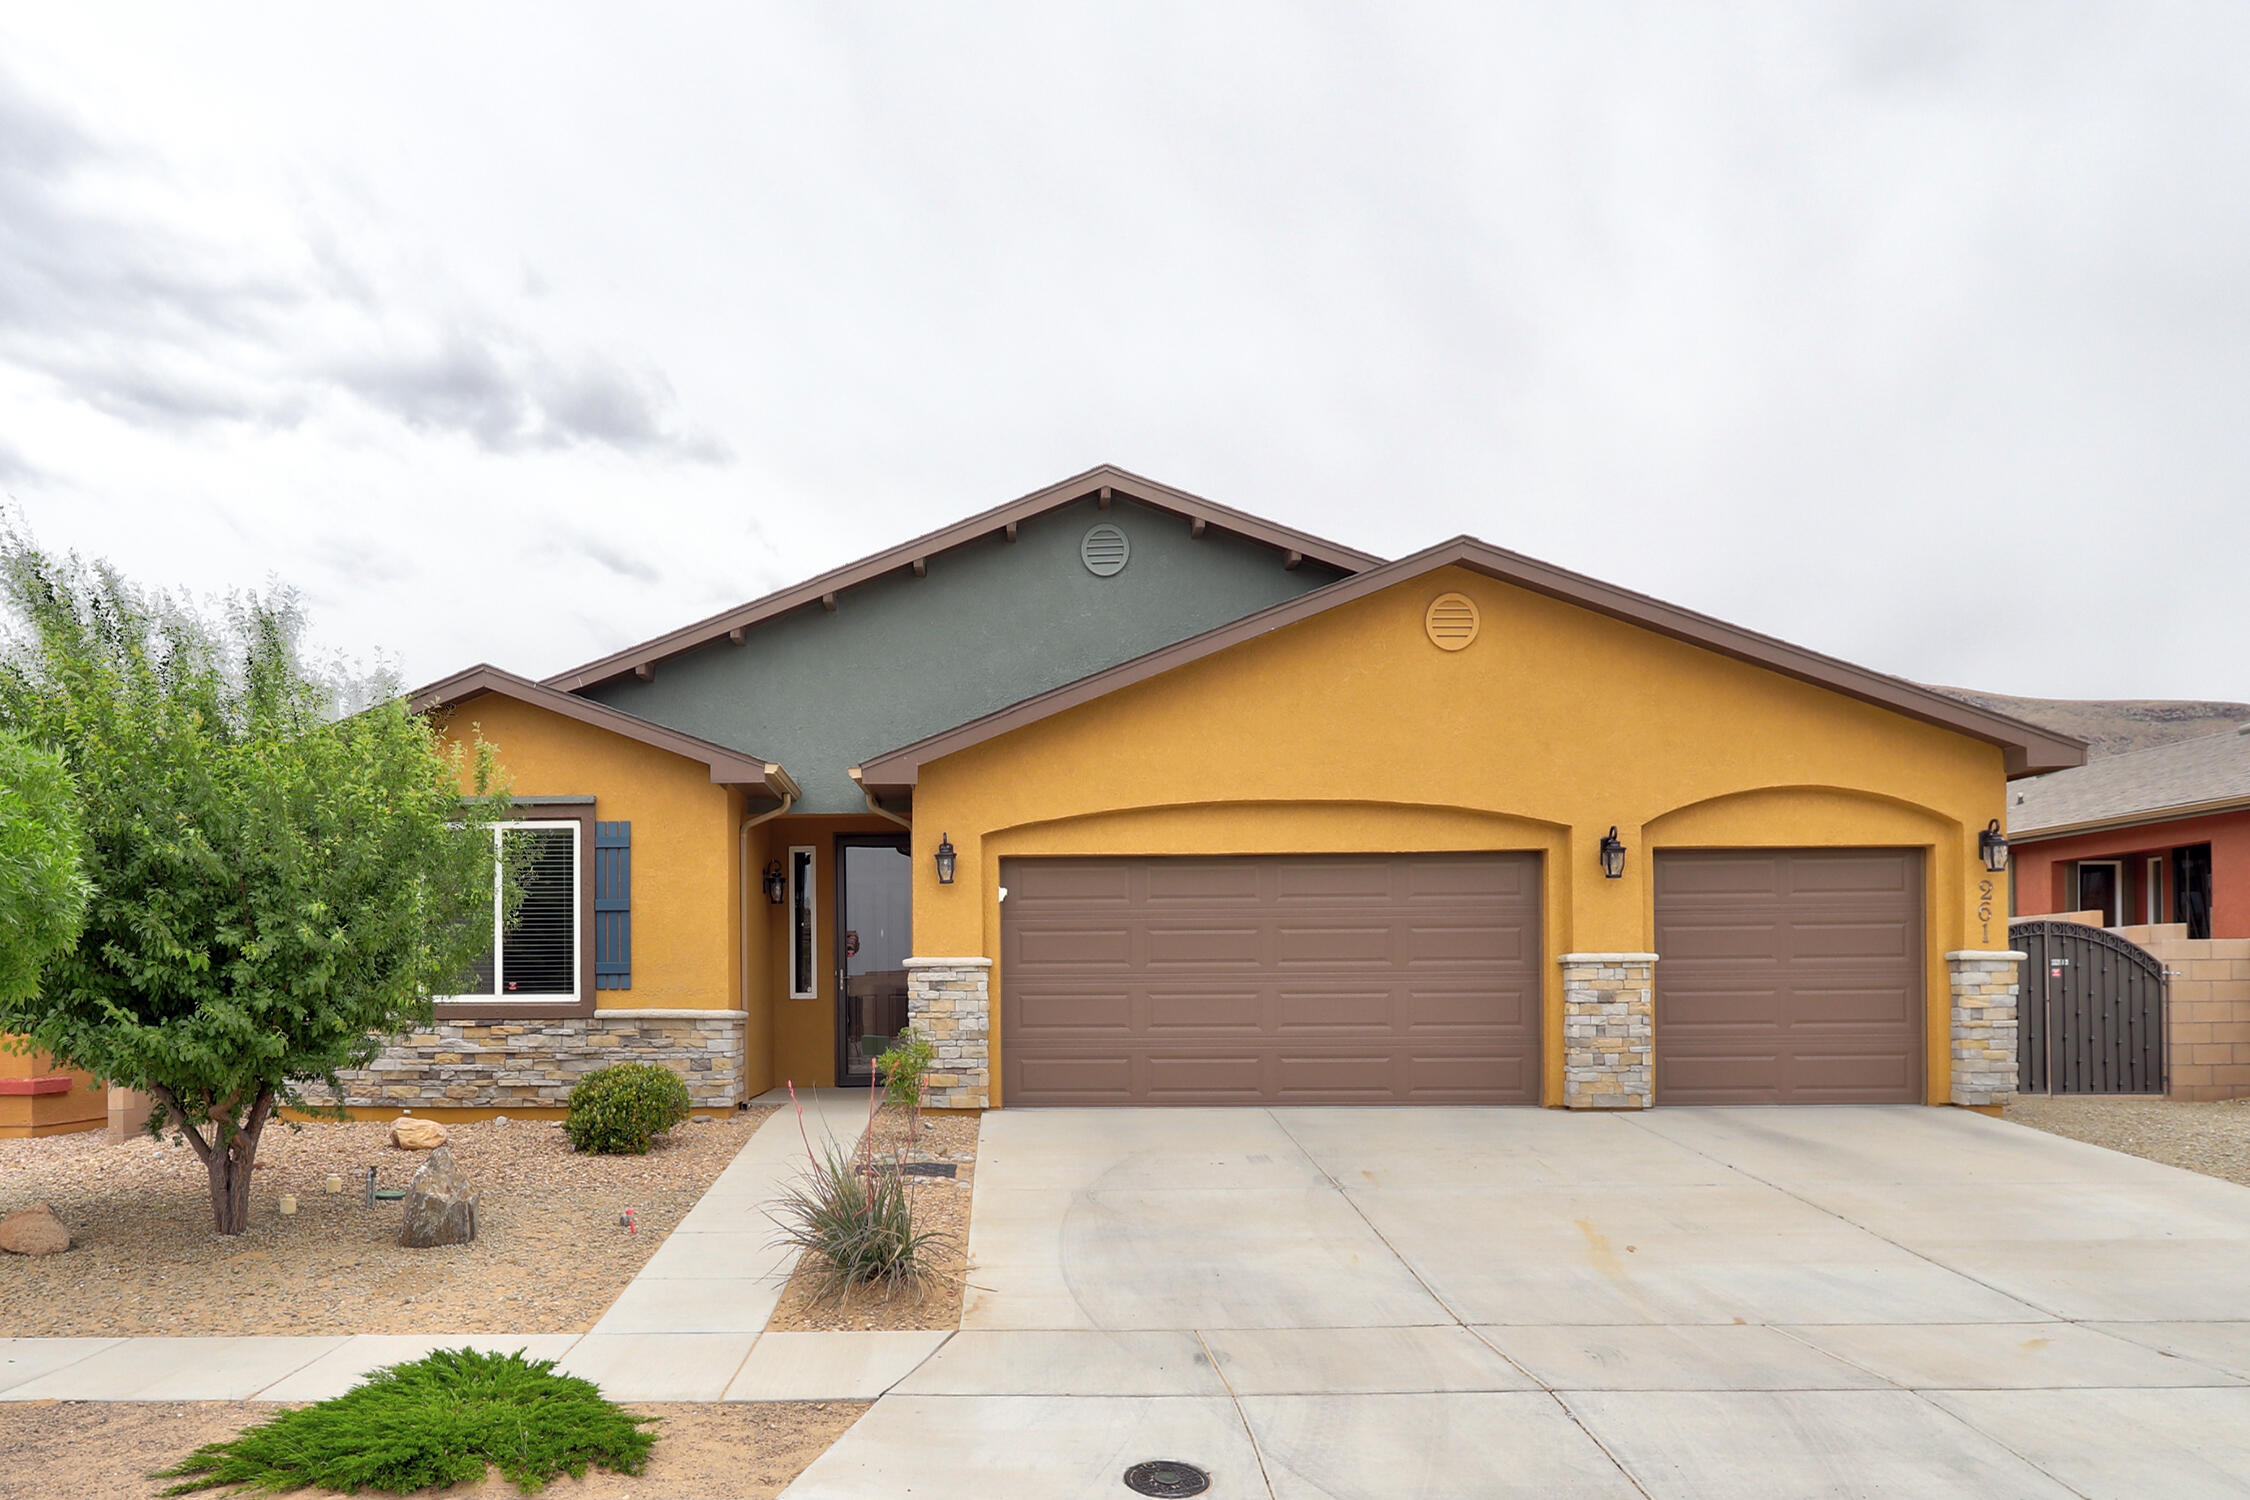 Home is located in a 55+ community.  New Carpet, Open floor plan, stainless steel appliances, easy care back yard, granite counter tops, 3 car garage, refrigerated air.